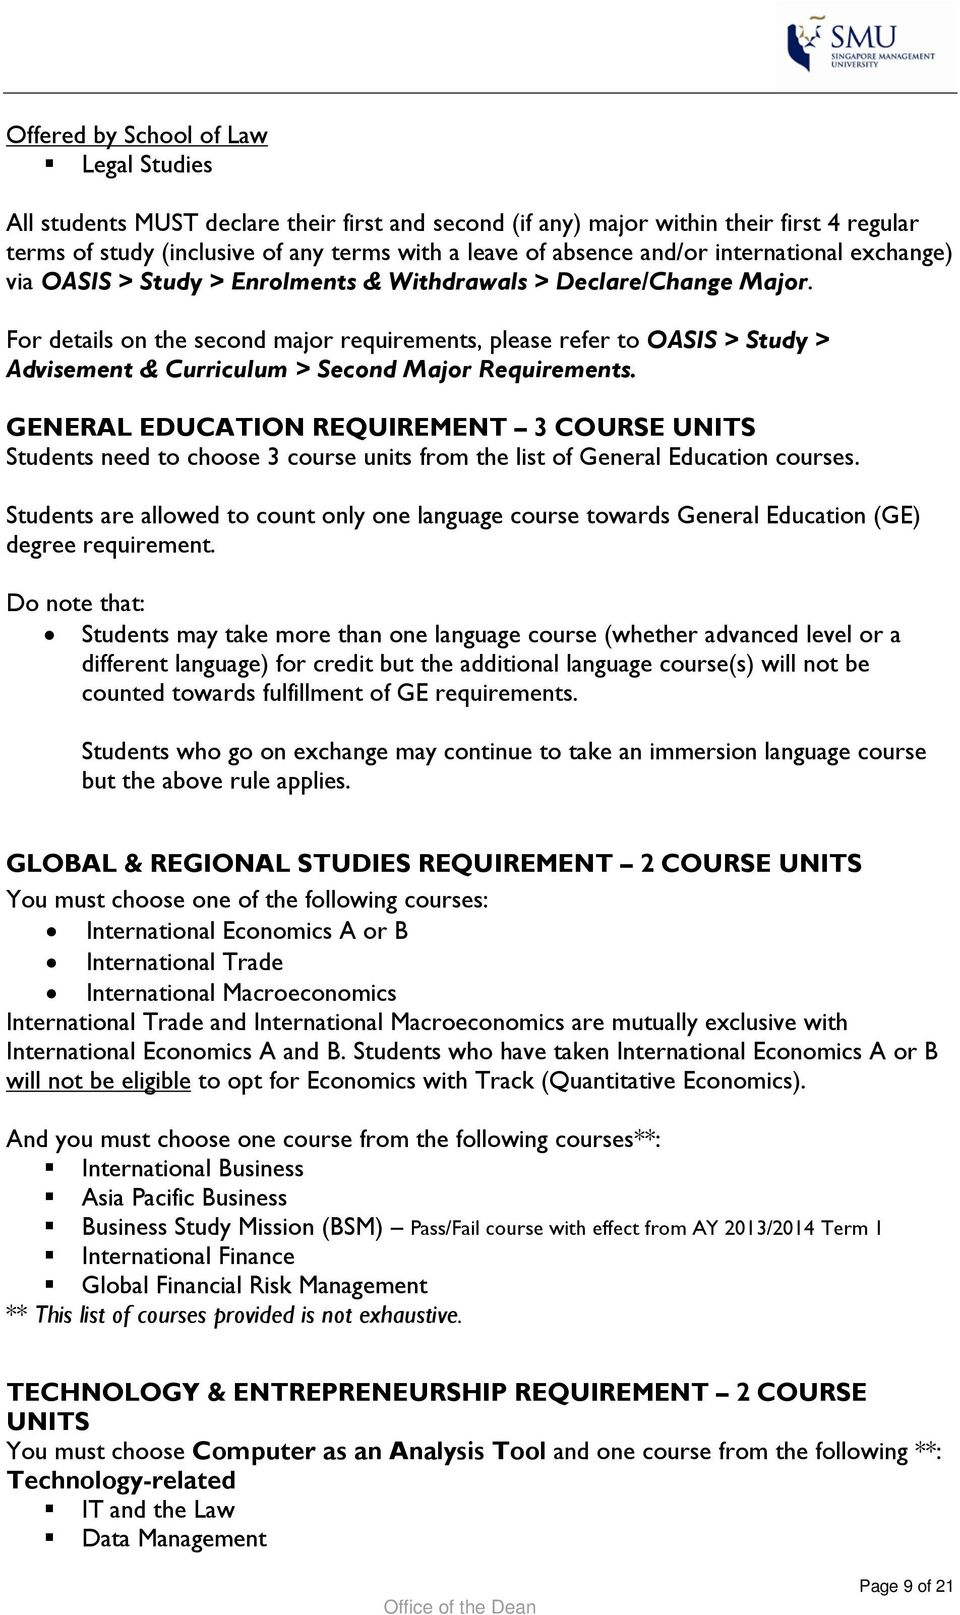 For details on the second major requirements, please refer to OASIS > Study > Advisement & Curriculum > Second Major Requirements.